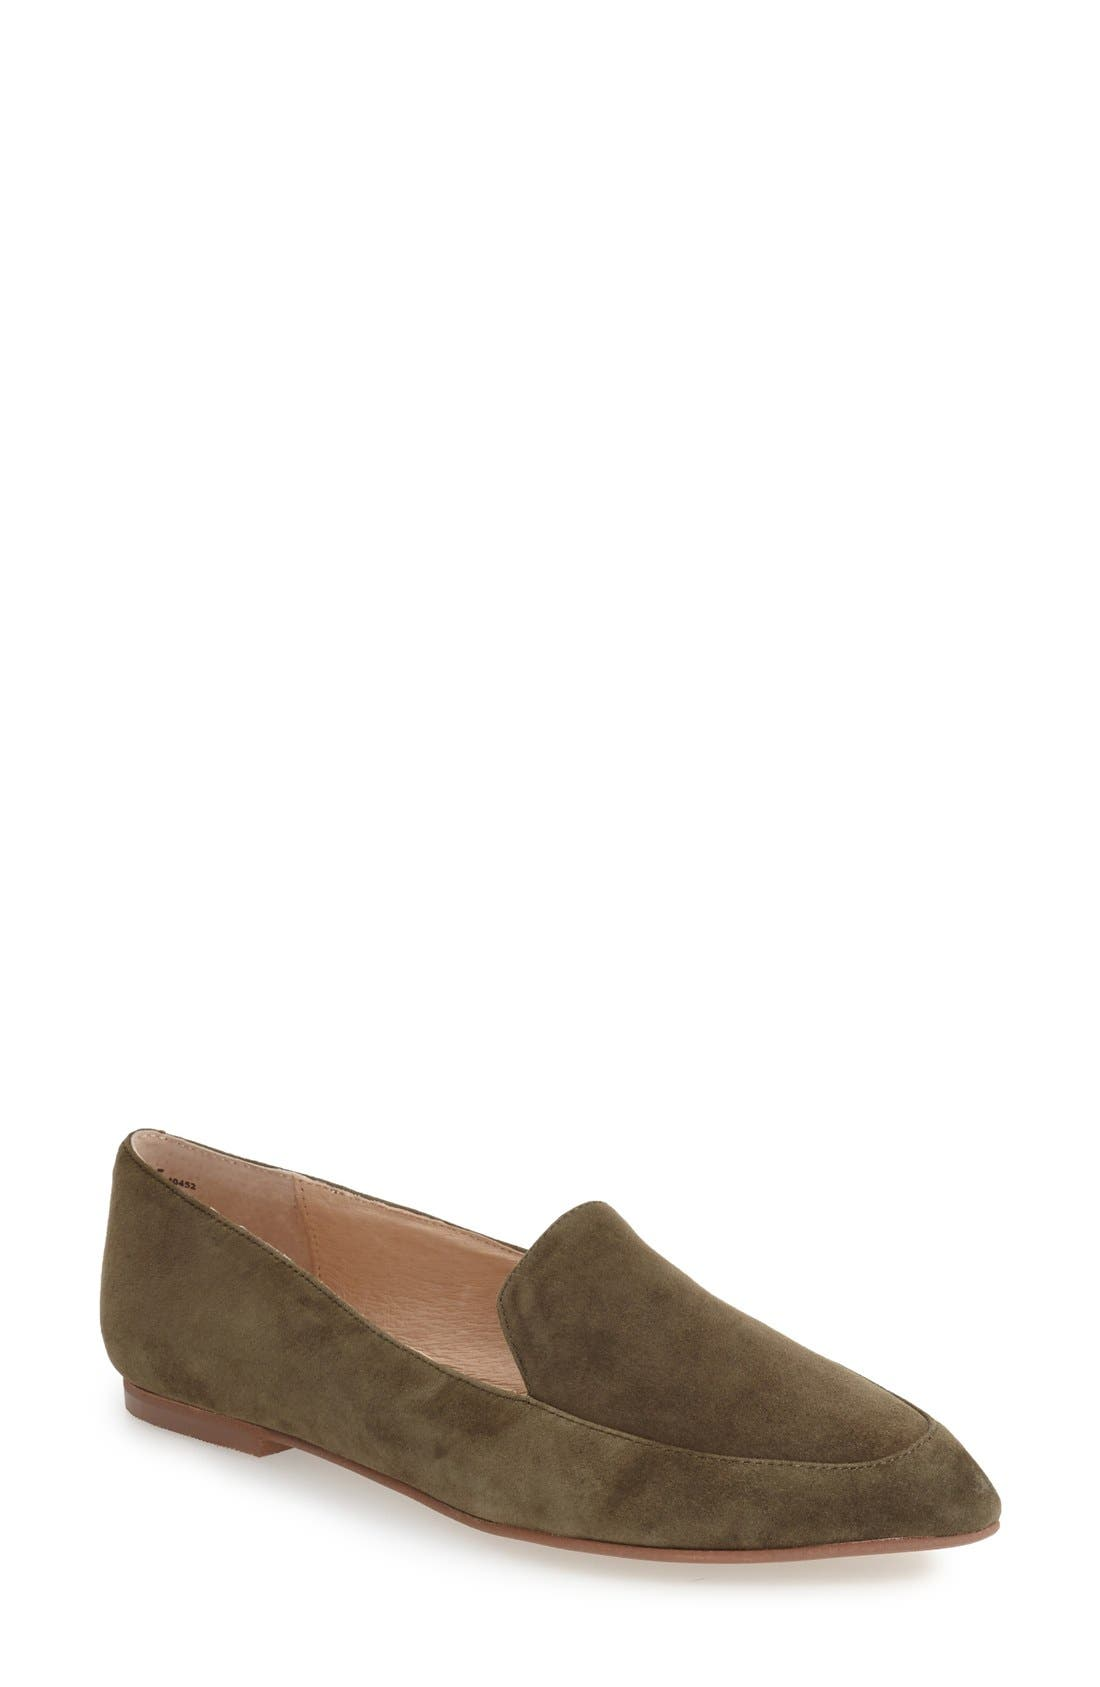 'Chandy' Loafer,                         Main,                         color, Olive Suede